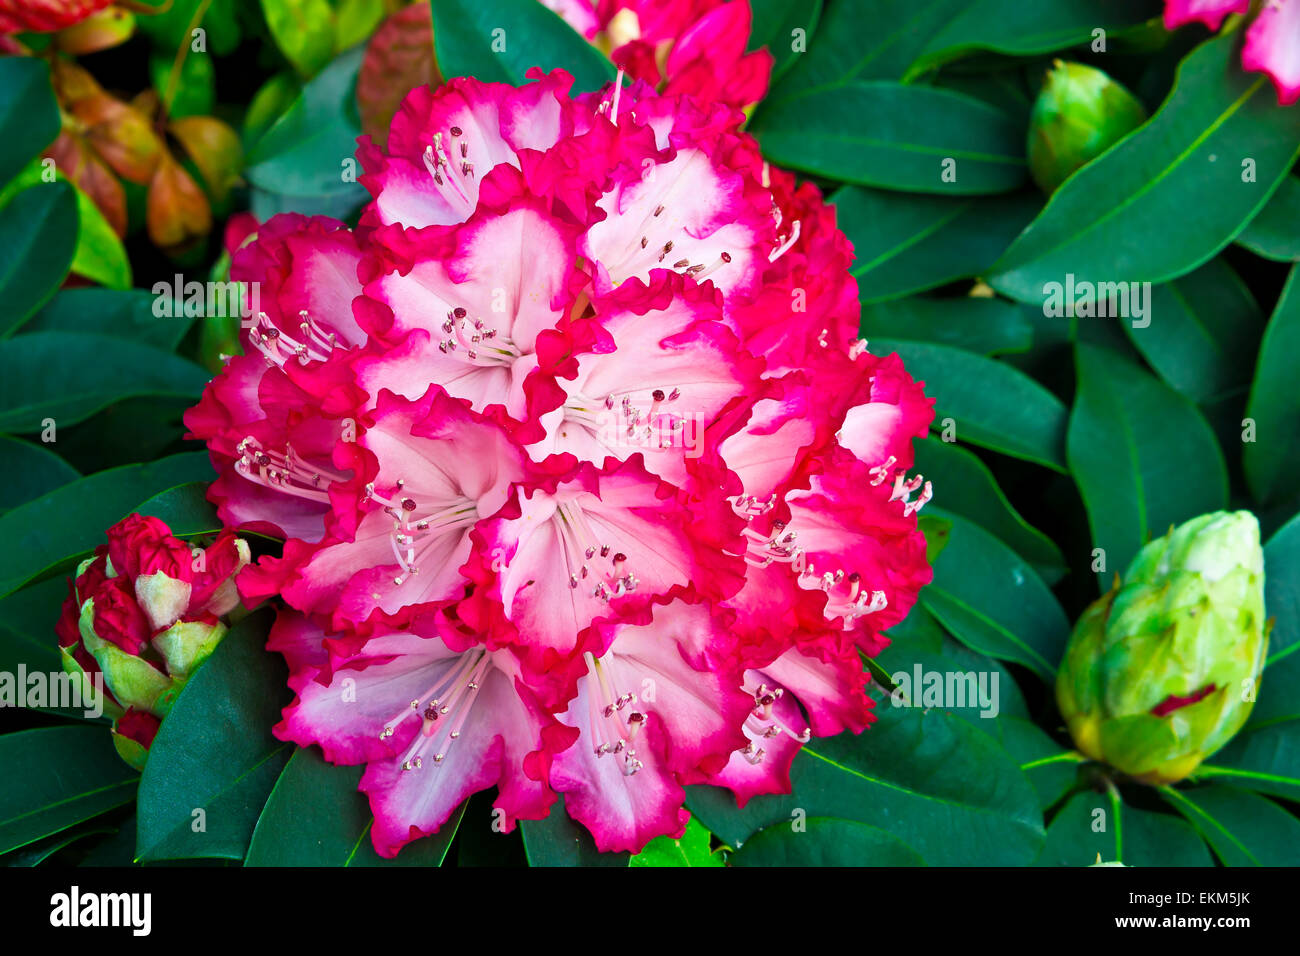 Large cluster of pink and white rhododendron flowers and buds. - Stock Image